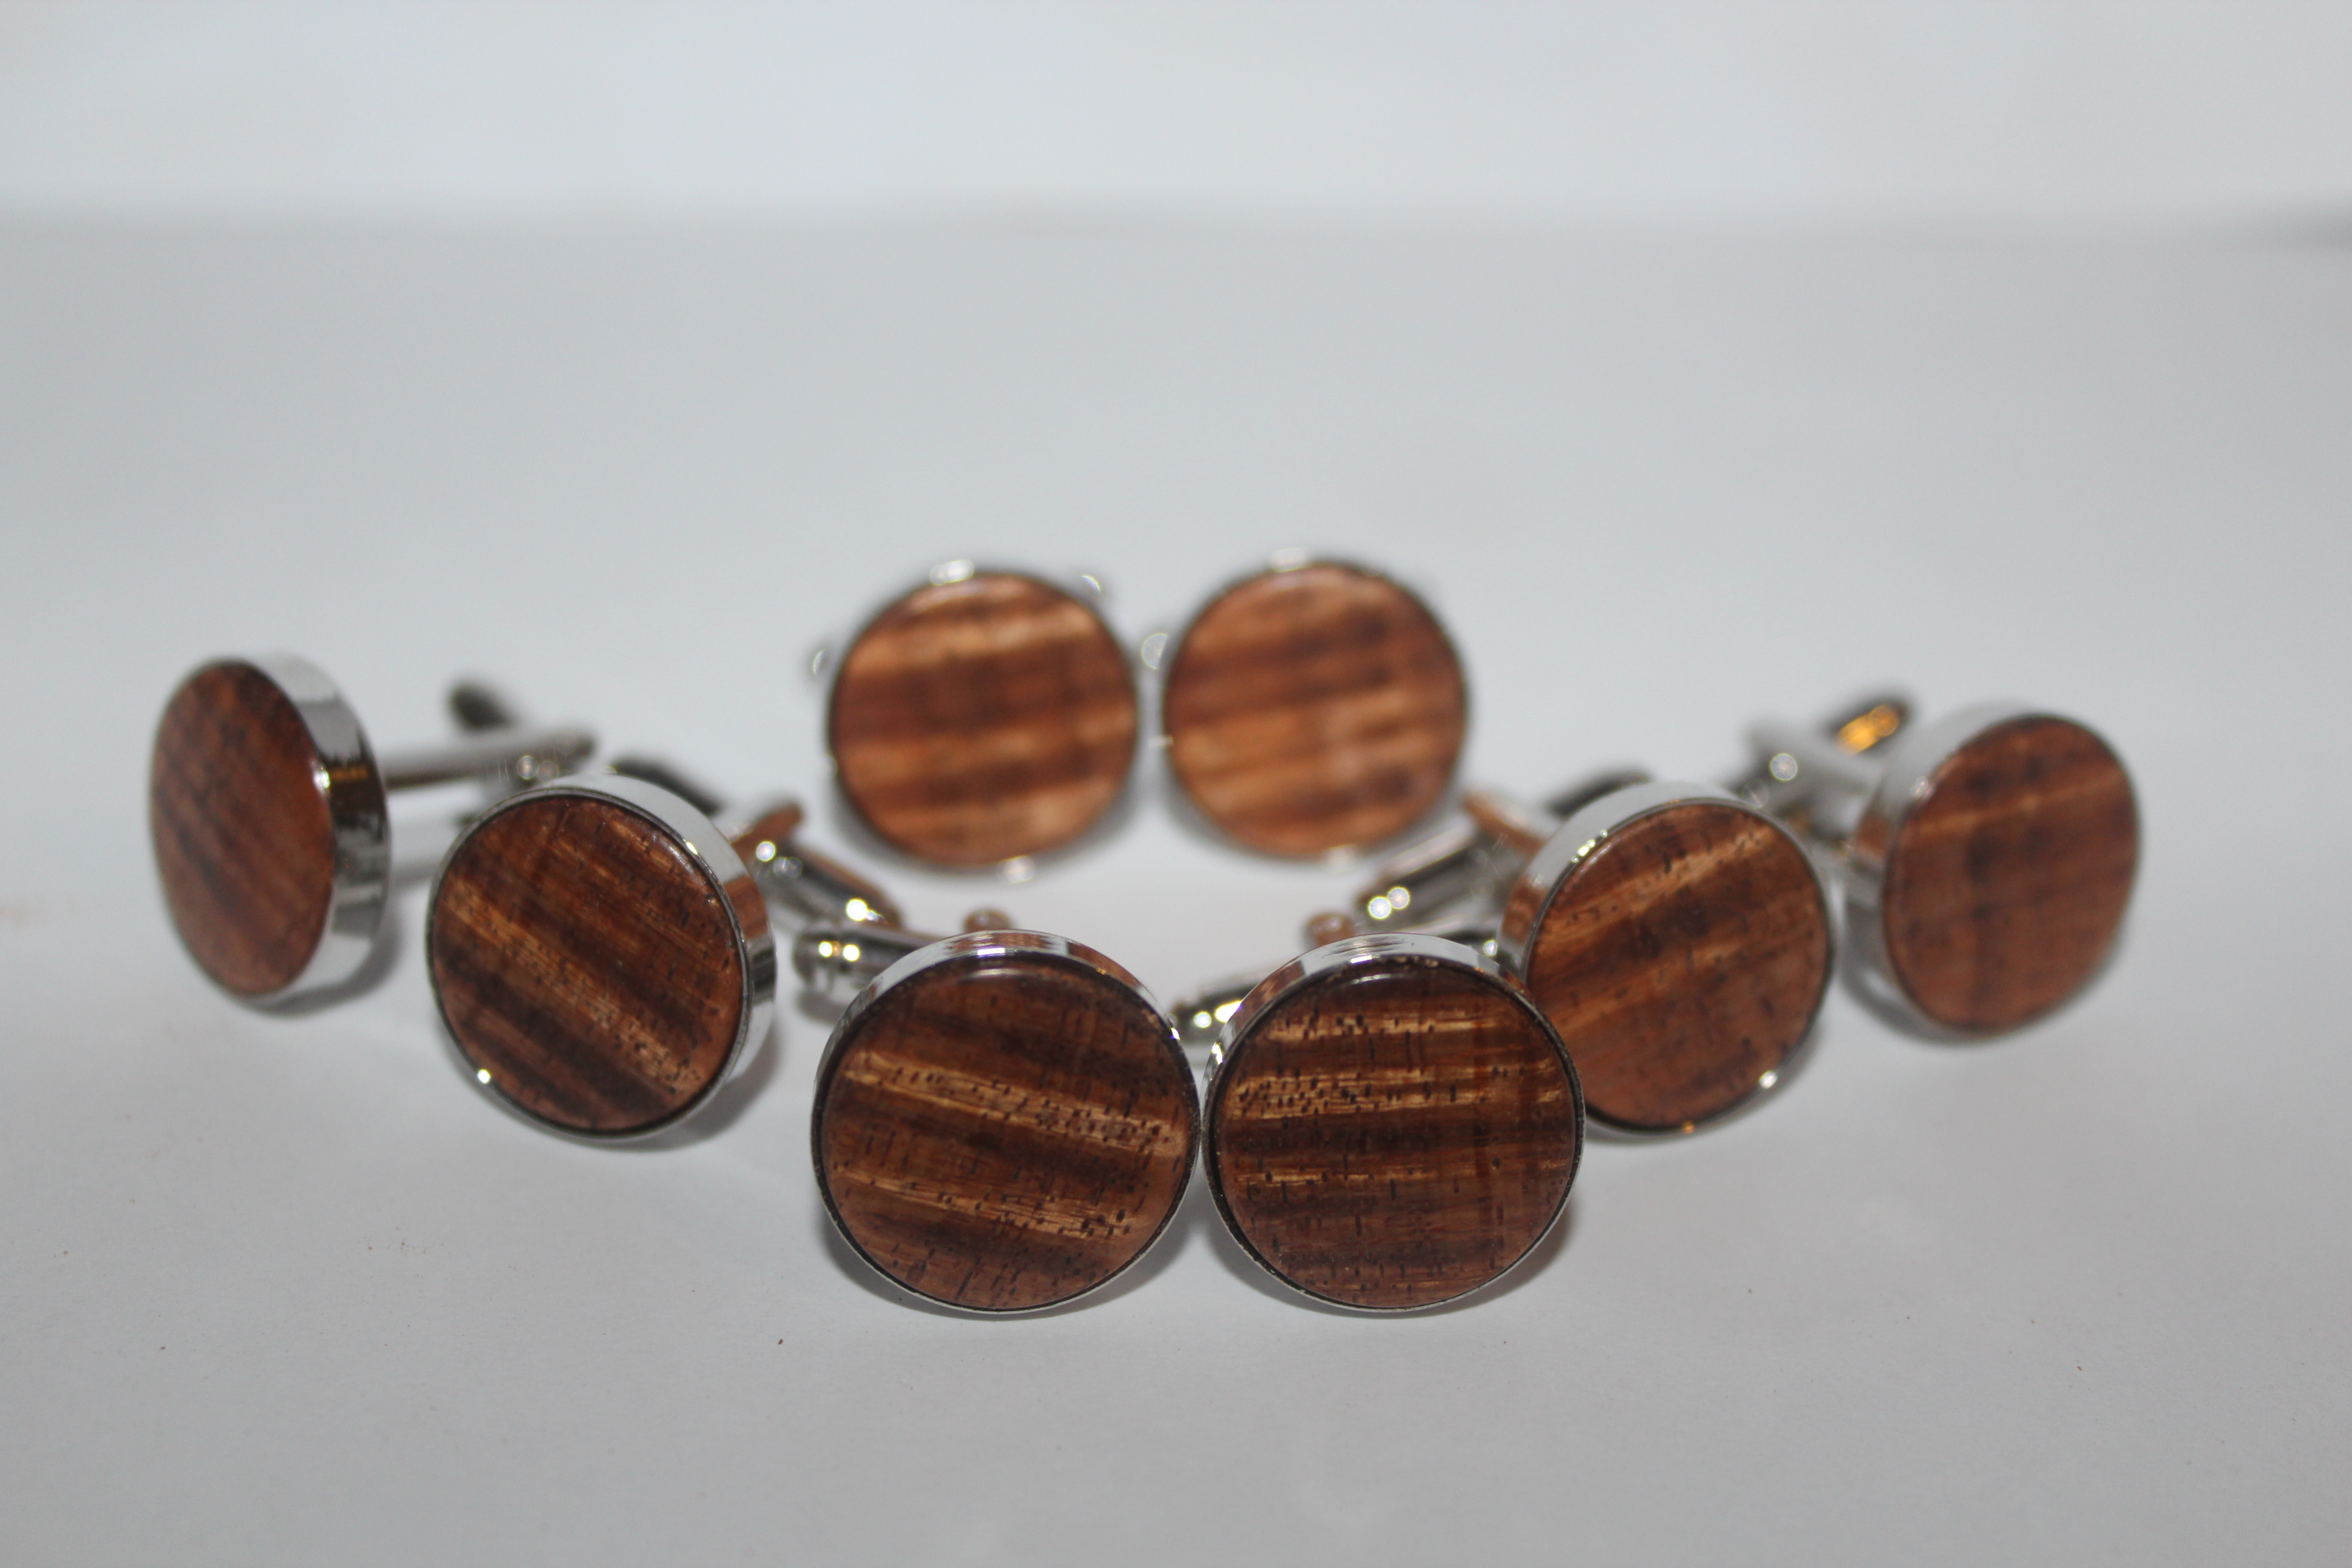 Figured blackwood cufflinks